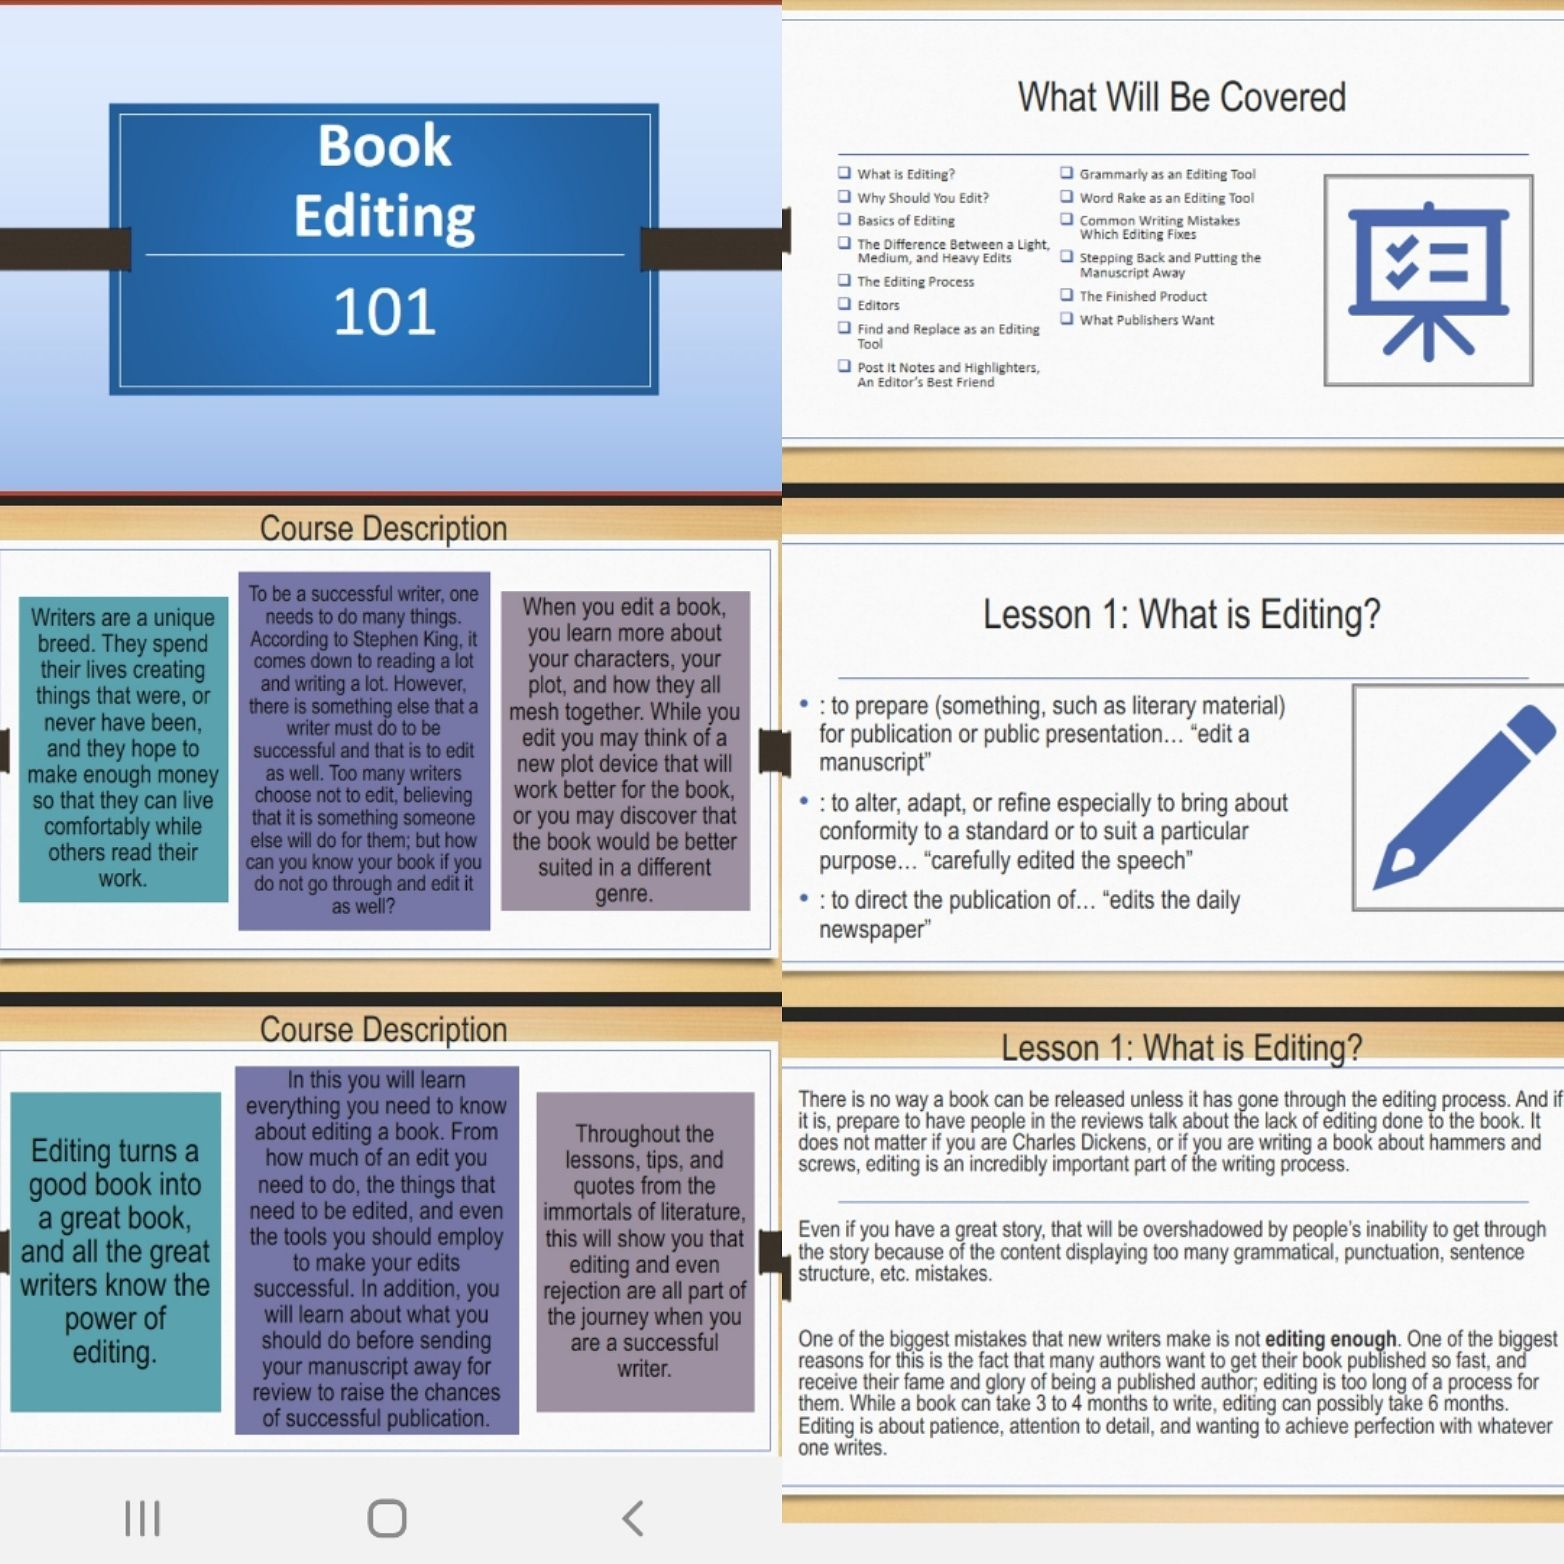 Book Editing 101 The Lesson You Need Book Editing Editing